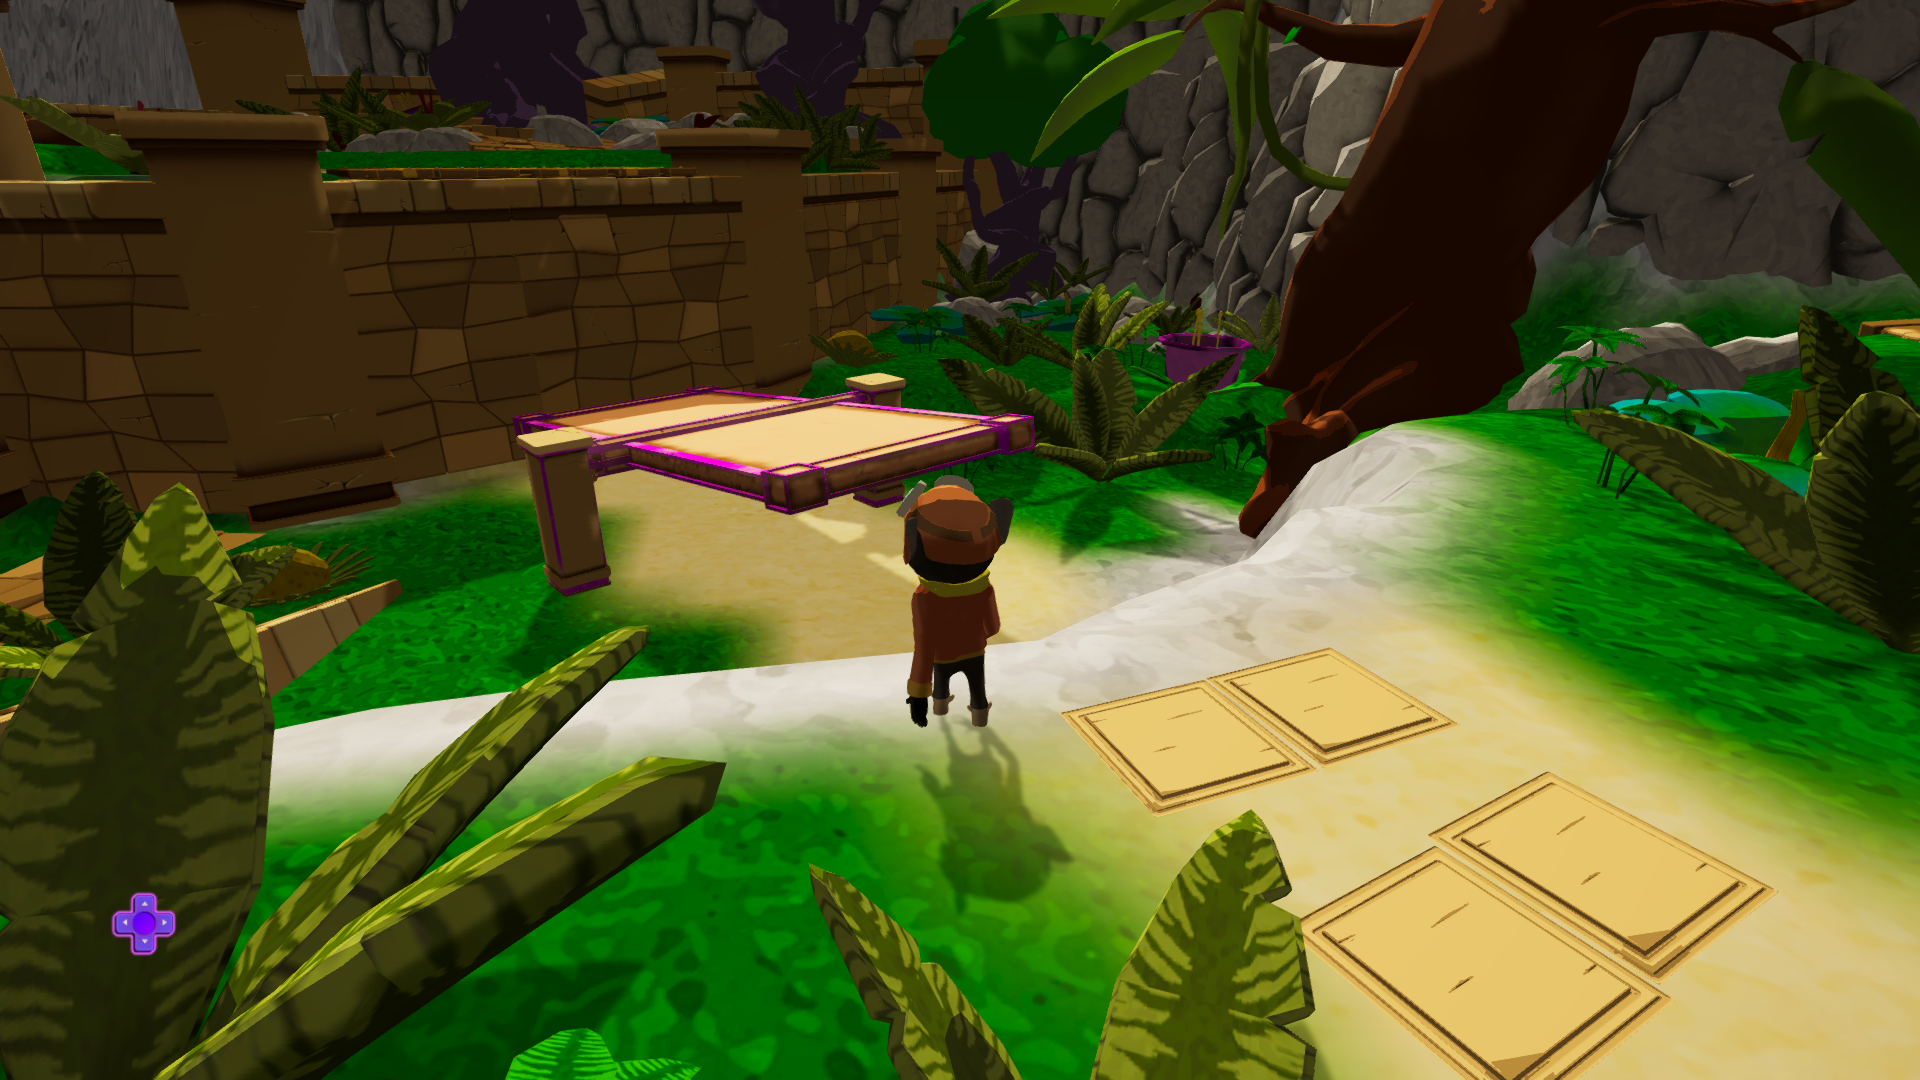 Figure 2: The seesaw intended for familiarize the player with game physics in platforming